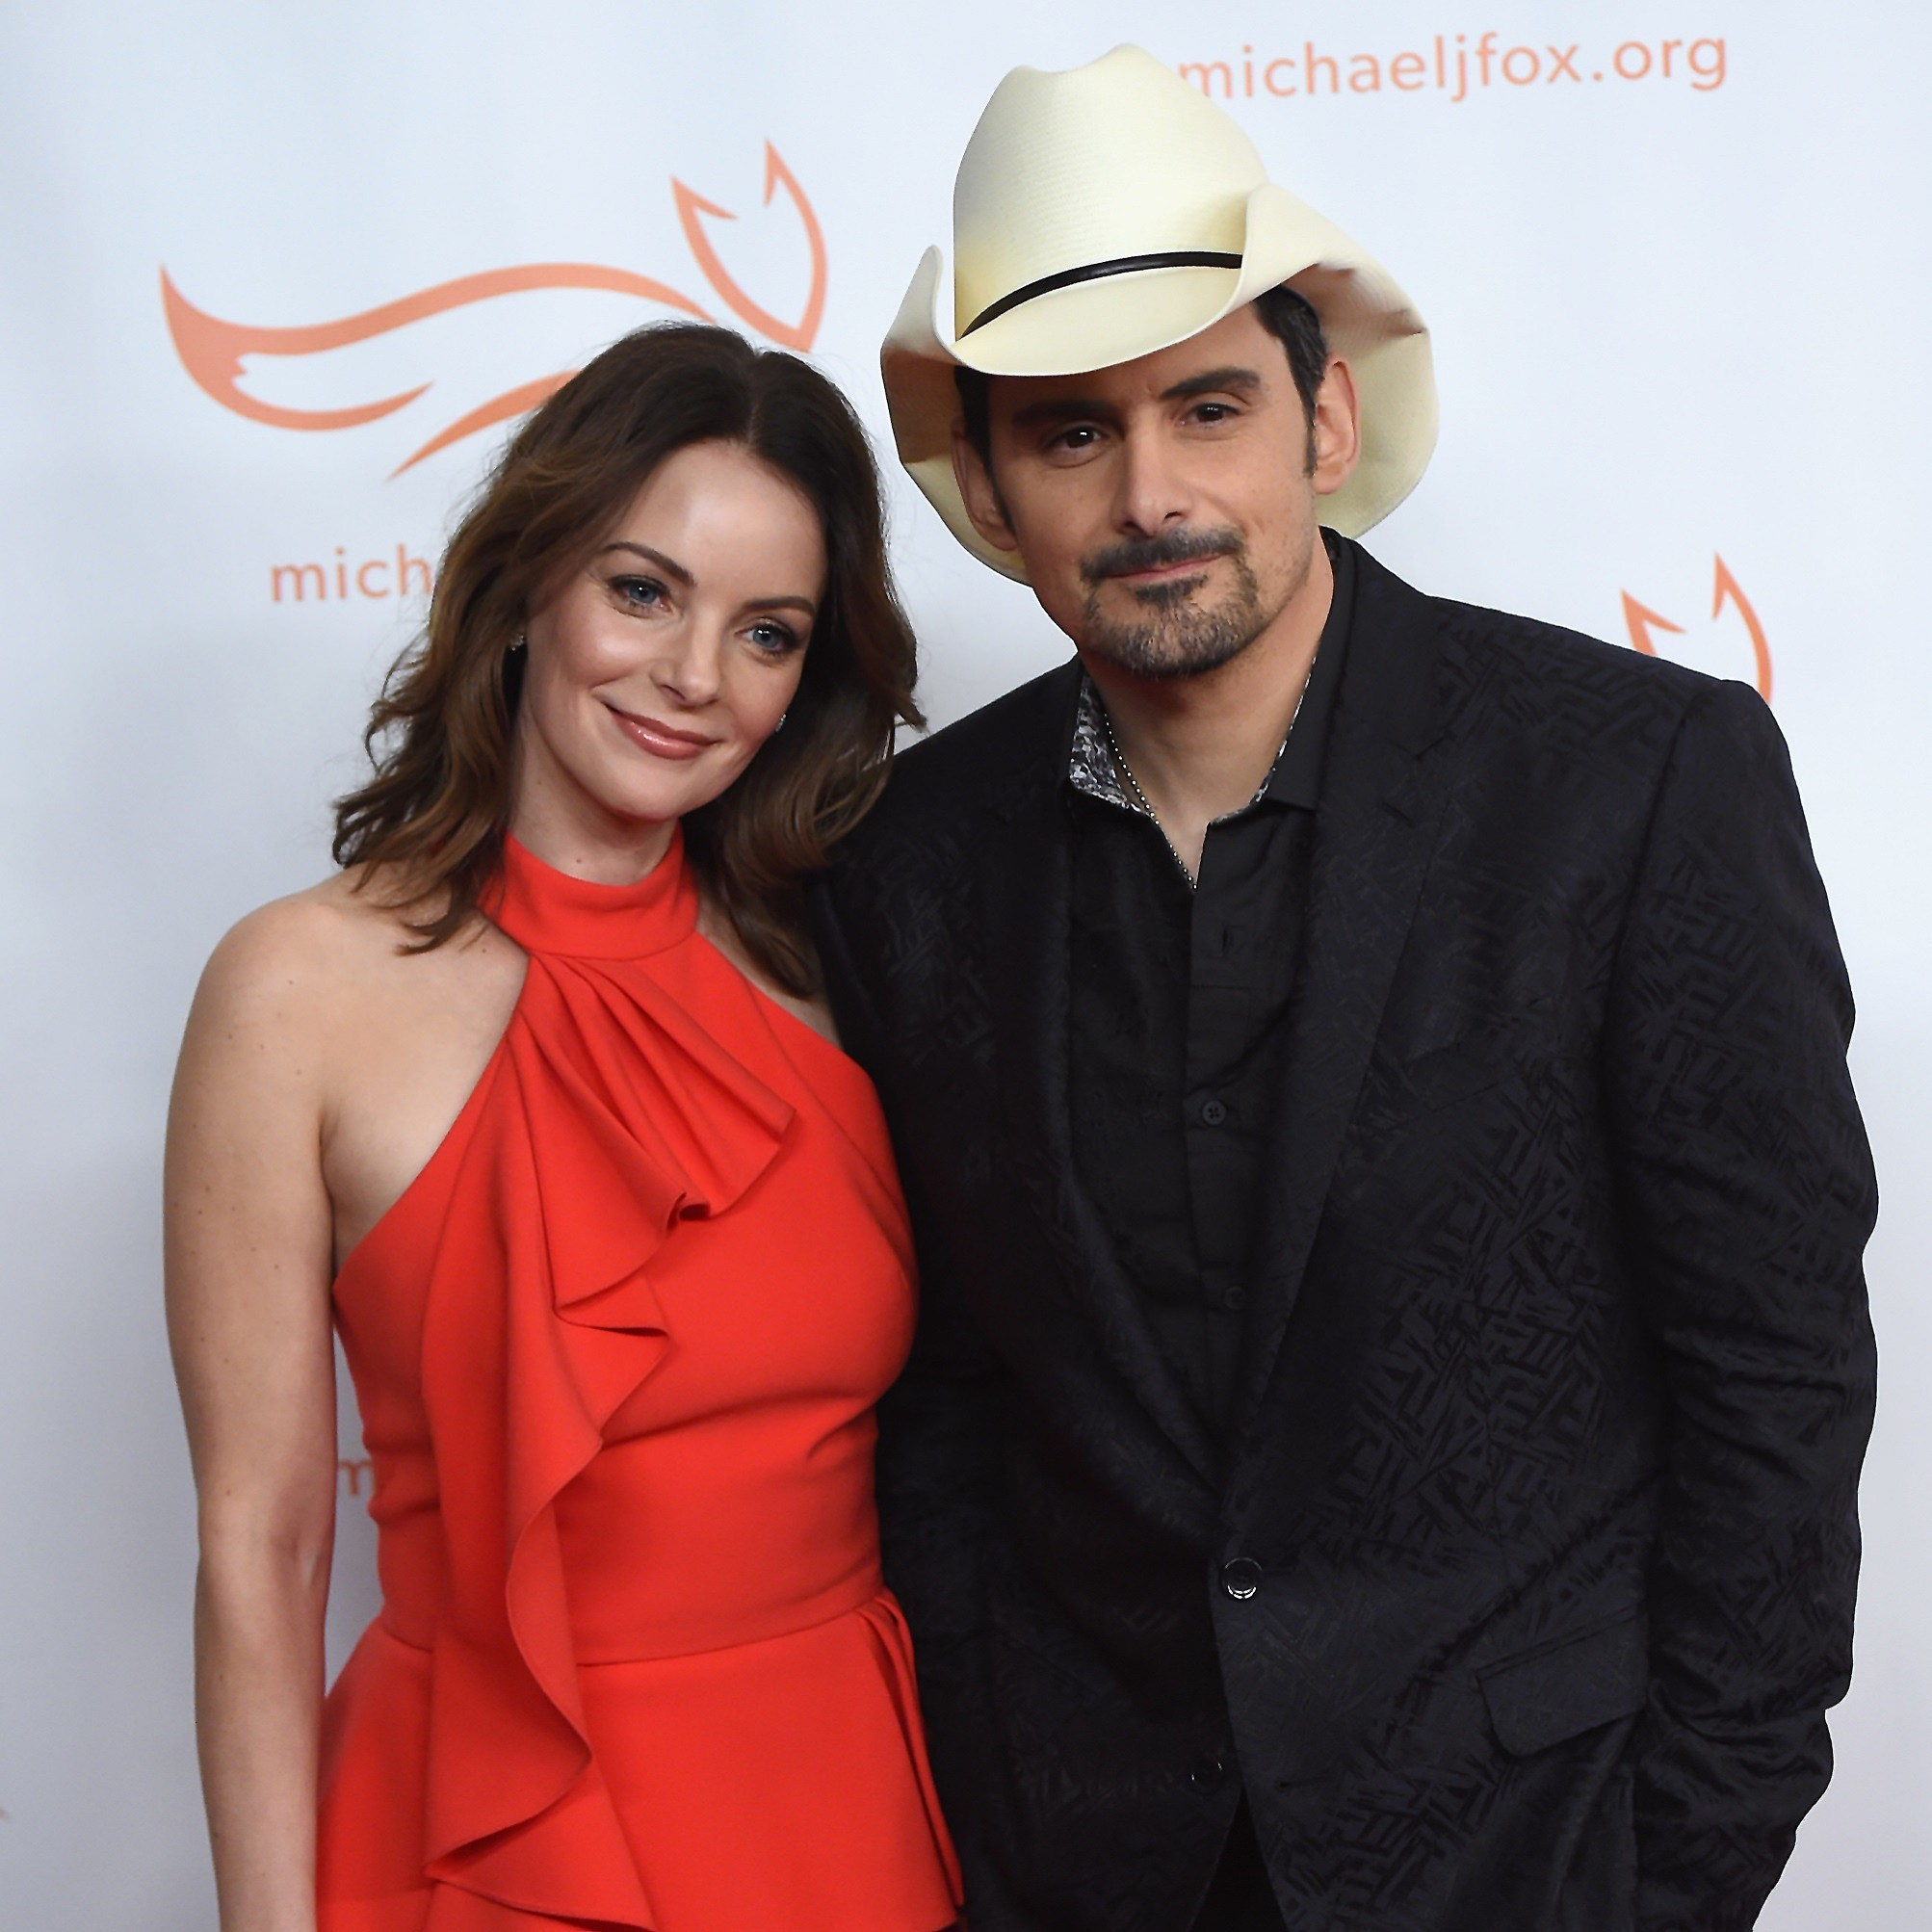 Brad + Kimberly Williams-Paisley's Most Adorable Moments